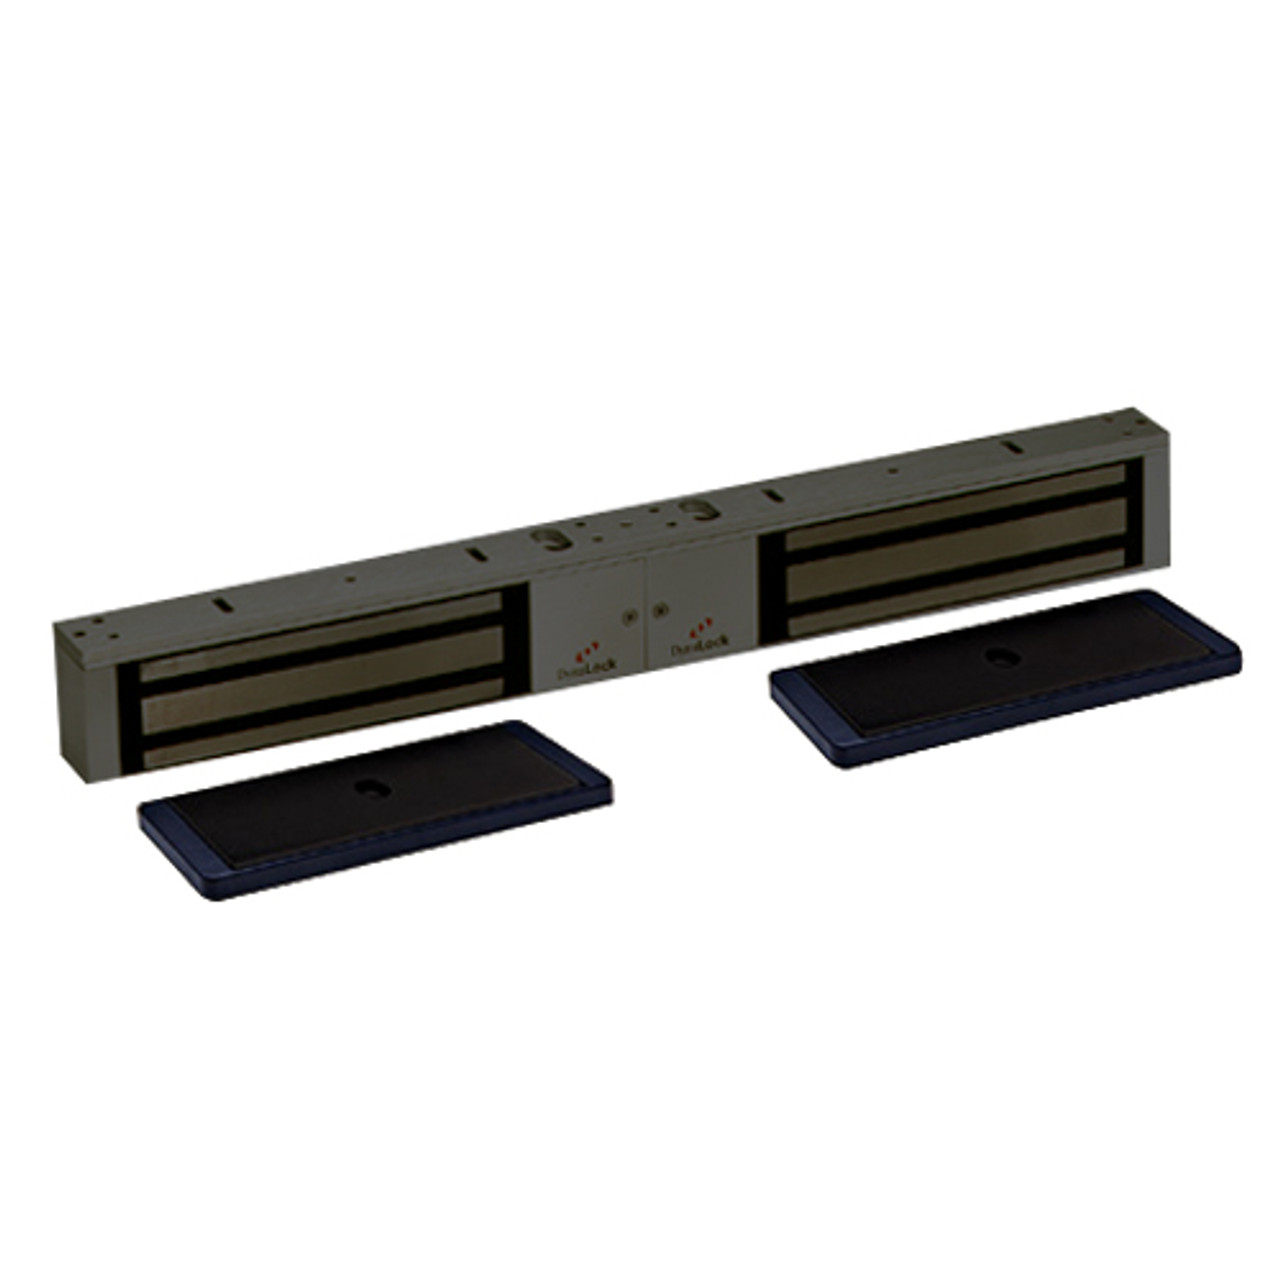 2022-US10B DynaLock 2000 Series 1200 LB Holding Force Double Outswing Electromagnetic Lock in Oil Rubbed Bronze